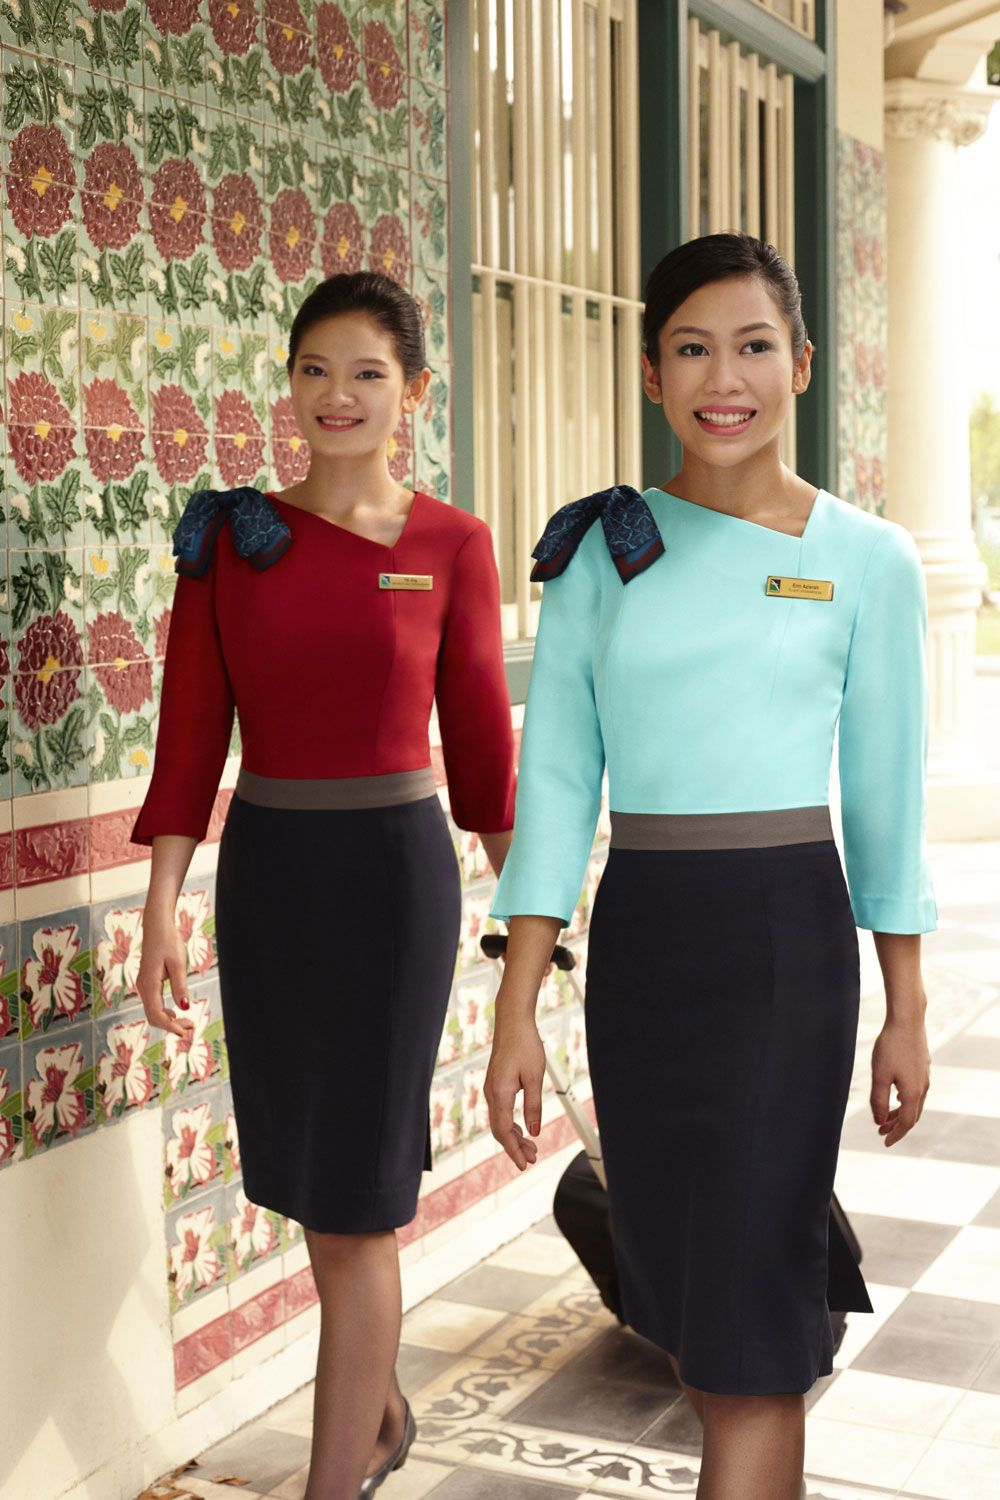 Silk air cabin crew glamorous cabin crew in 2019 air for Spa uniform in the philippines